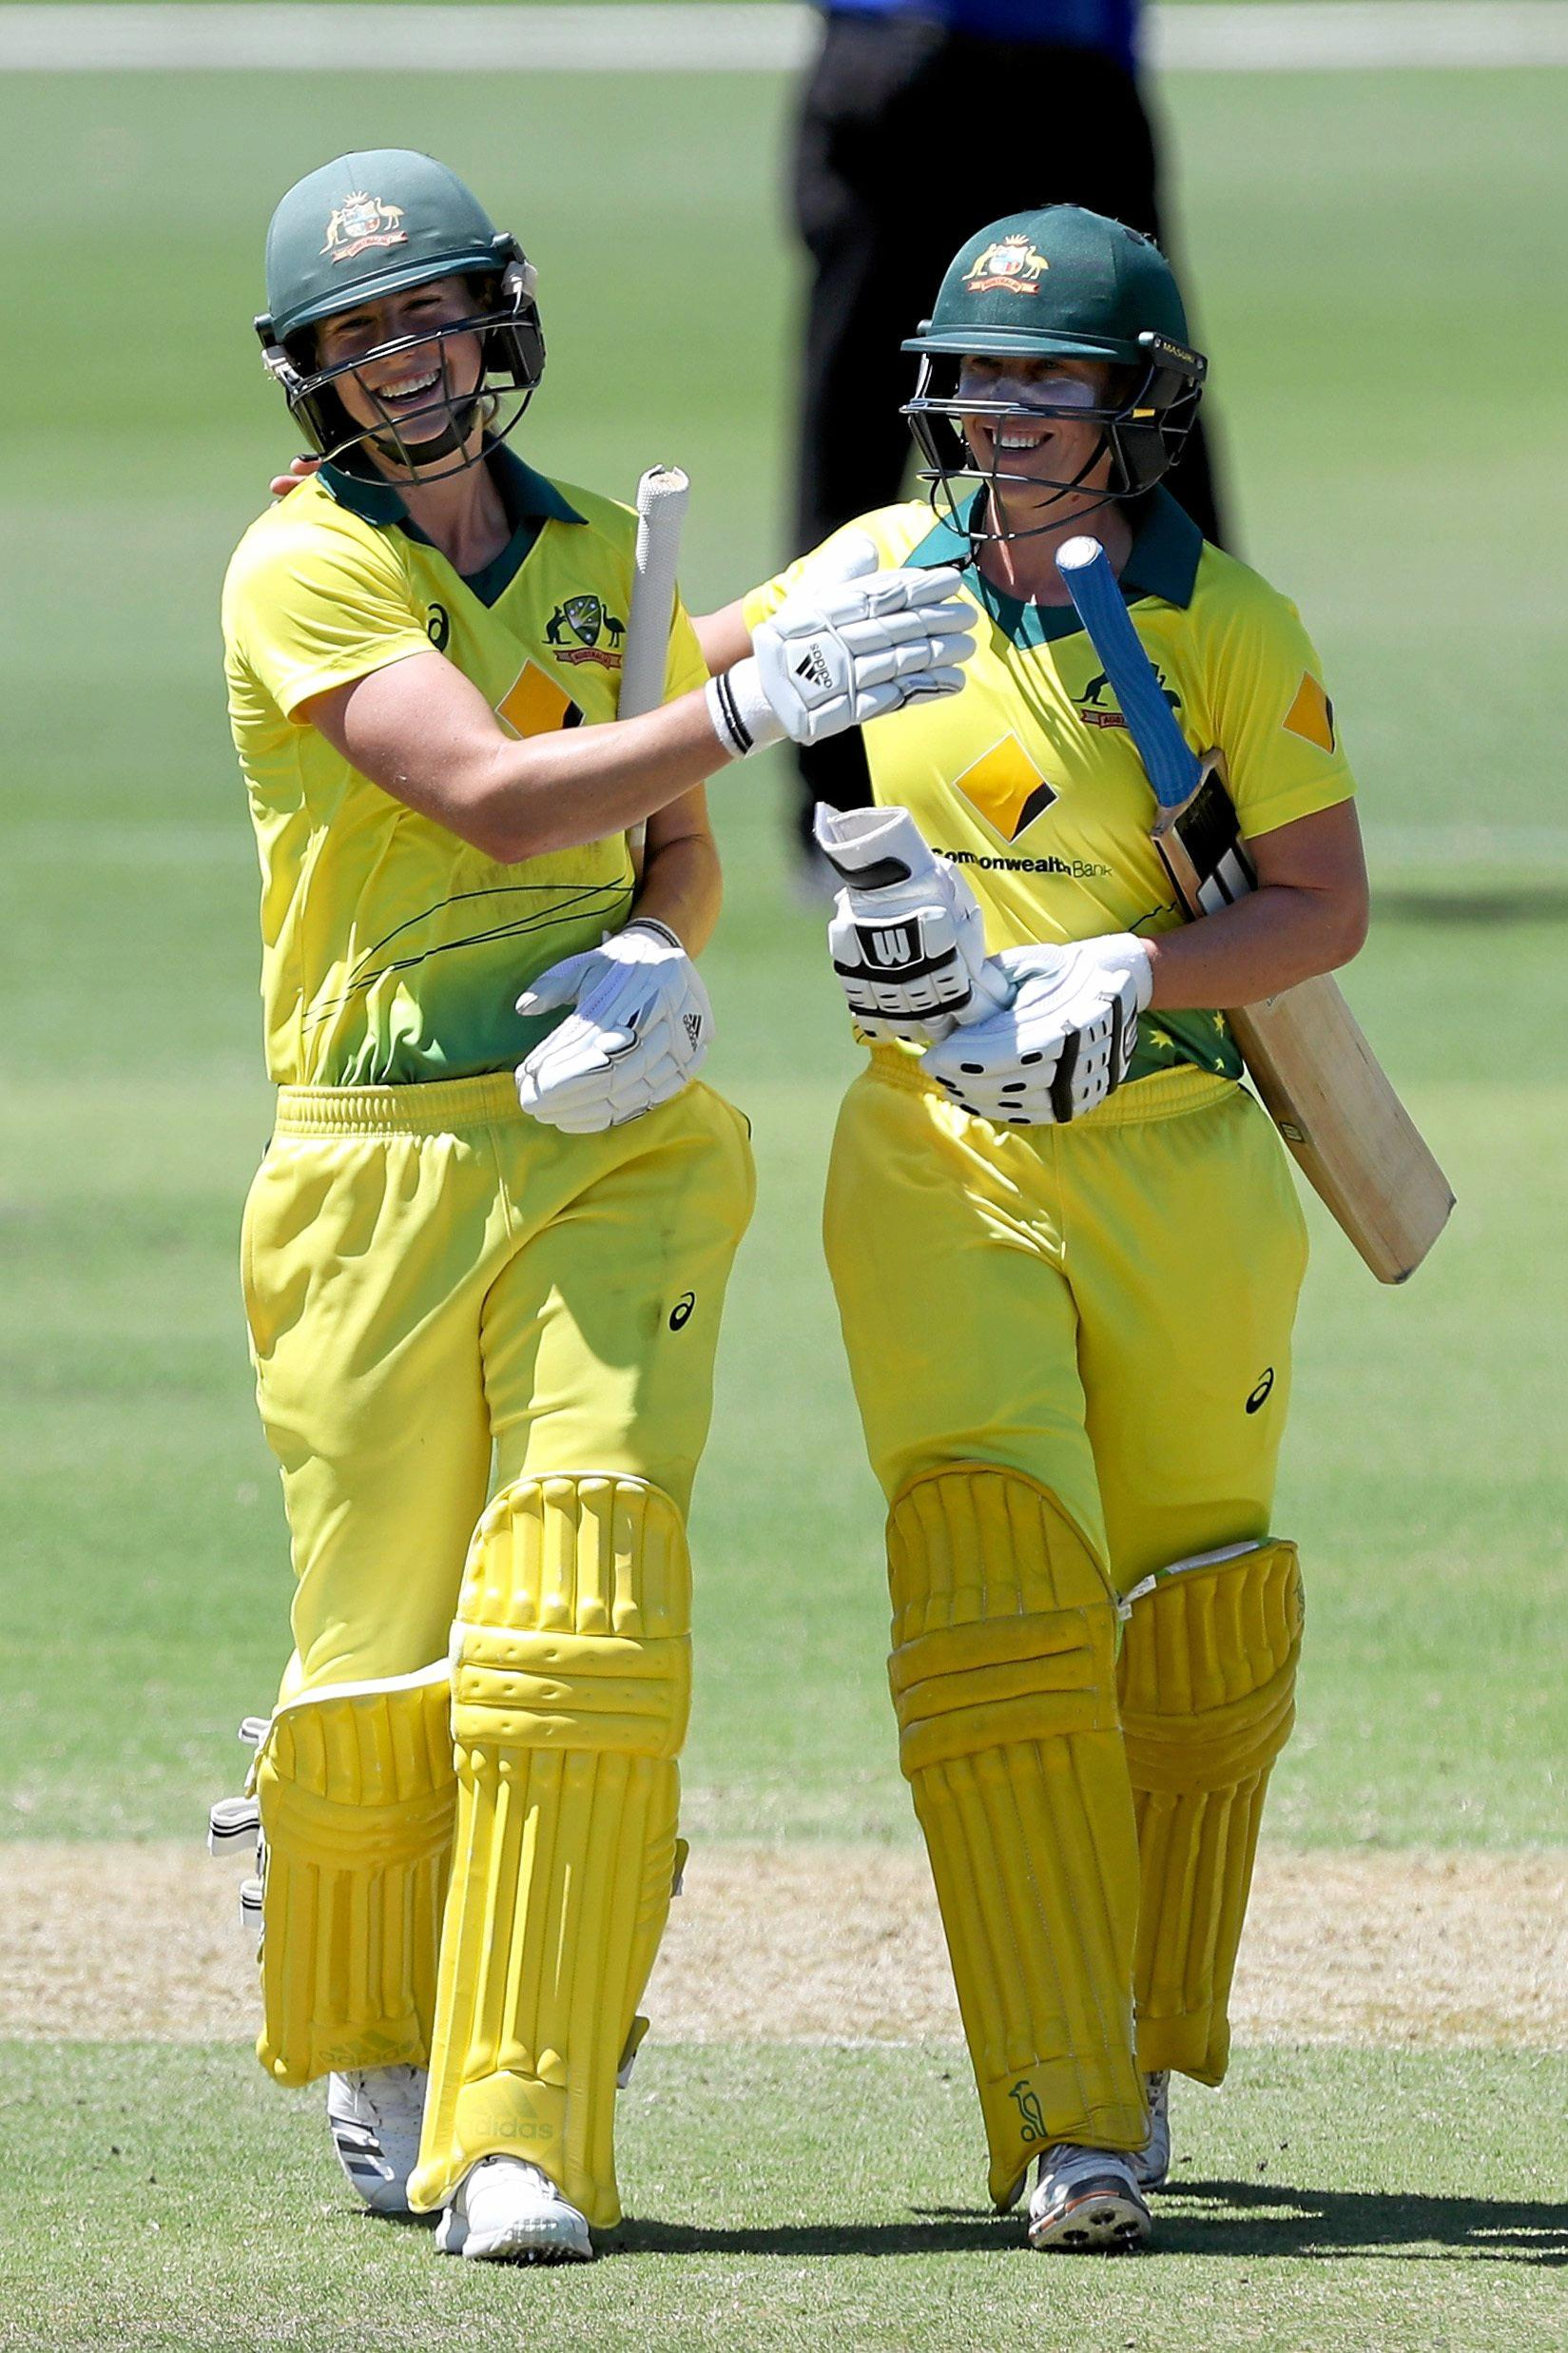 CLASS: Ellyse Perry of Australia celebrates her century with Warwick player Delissa Kimmince during the second women's One Day International (ODI) cricket match between Australia and New Zealand at Karen Rolton Oval in Adelaide on Sunday.